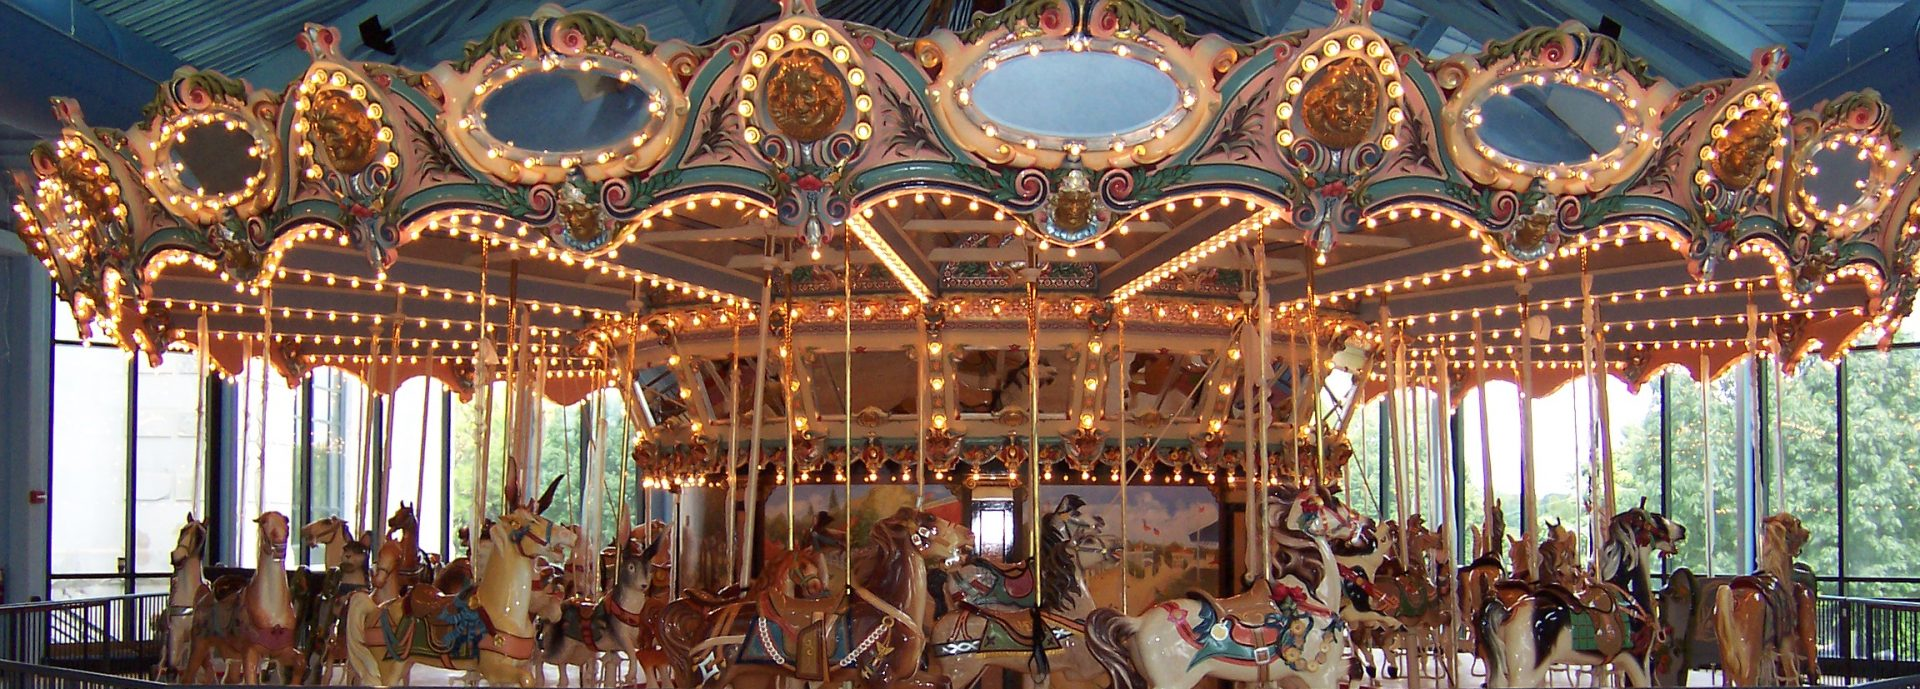 Carousels and Carvings